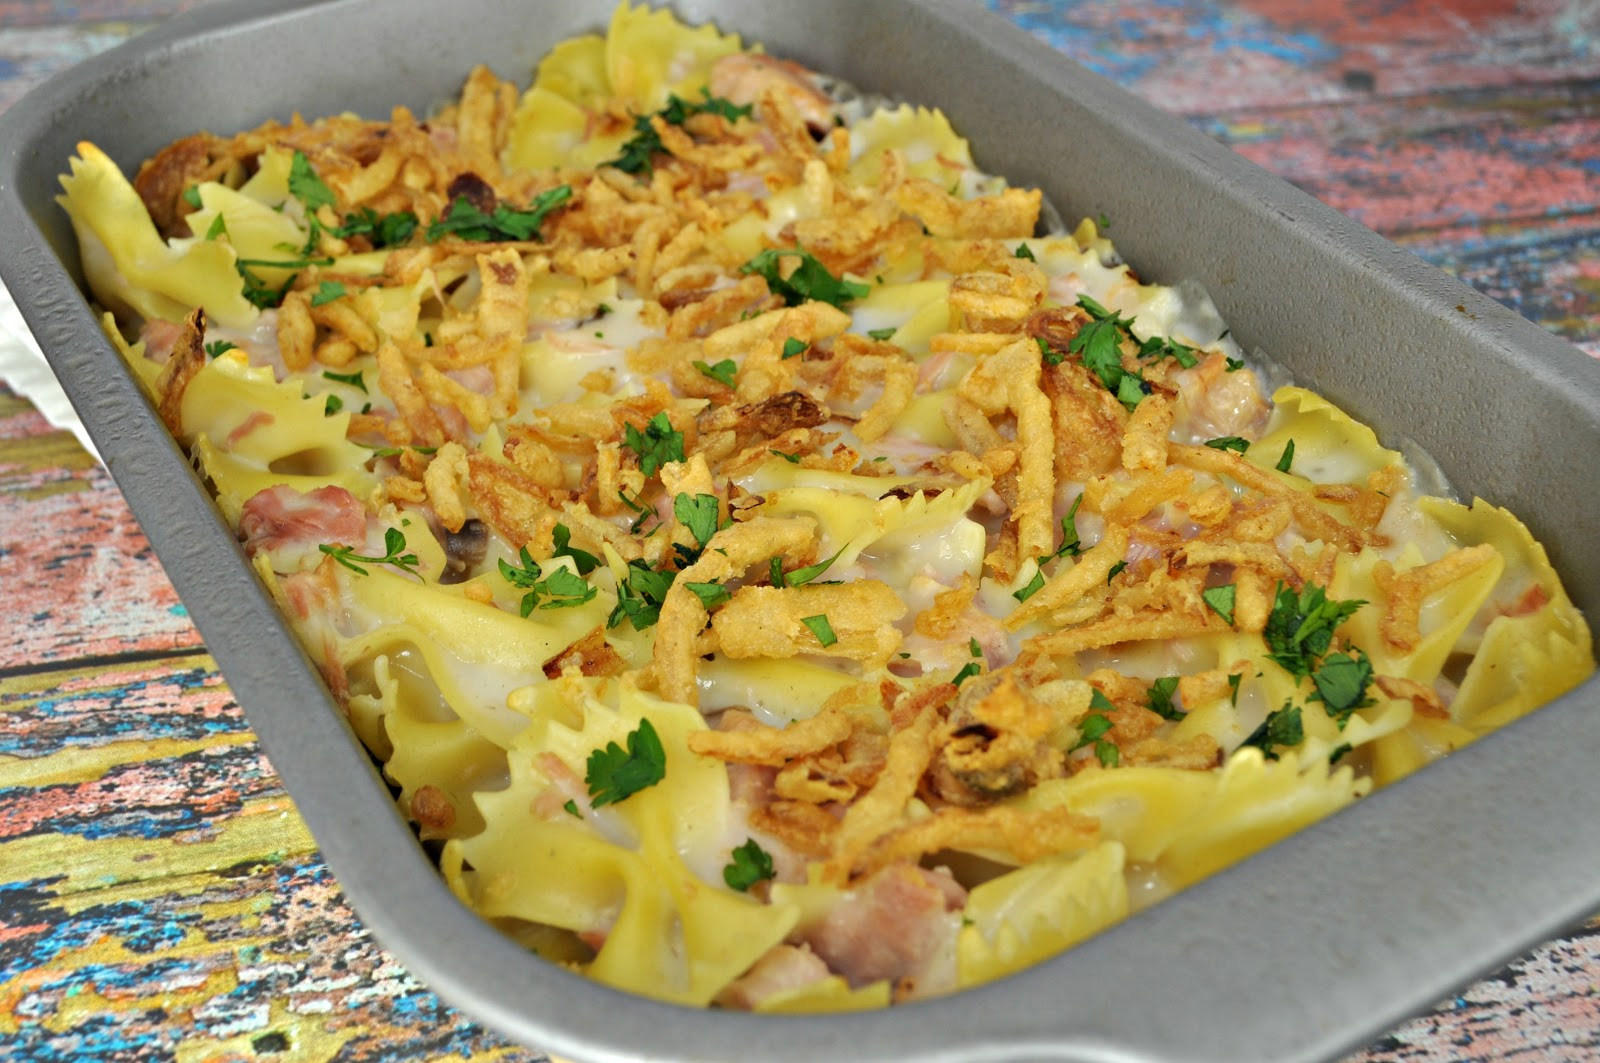 Food hussy recipe ham noodle casserole the food hussy now ham casserole with egg noodles but as you may know my husband is allergic to eggs so i substituted bowties and it was just as tasty forumfinder Gallery